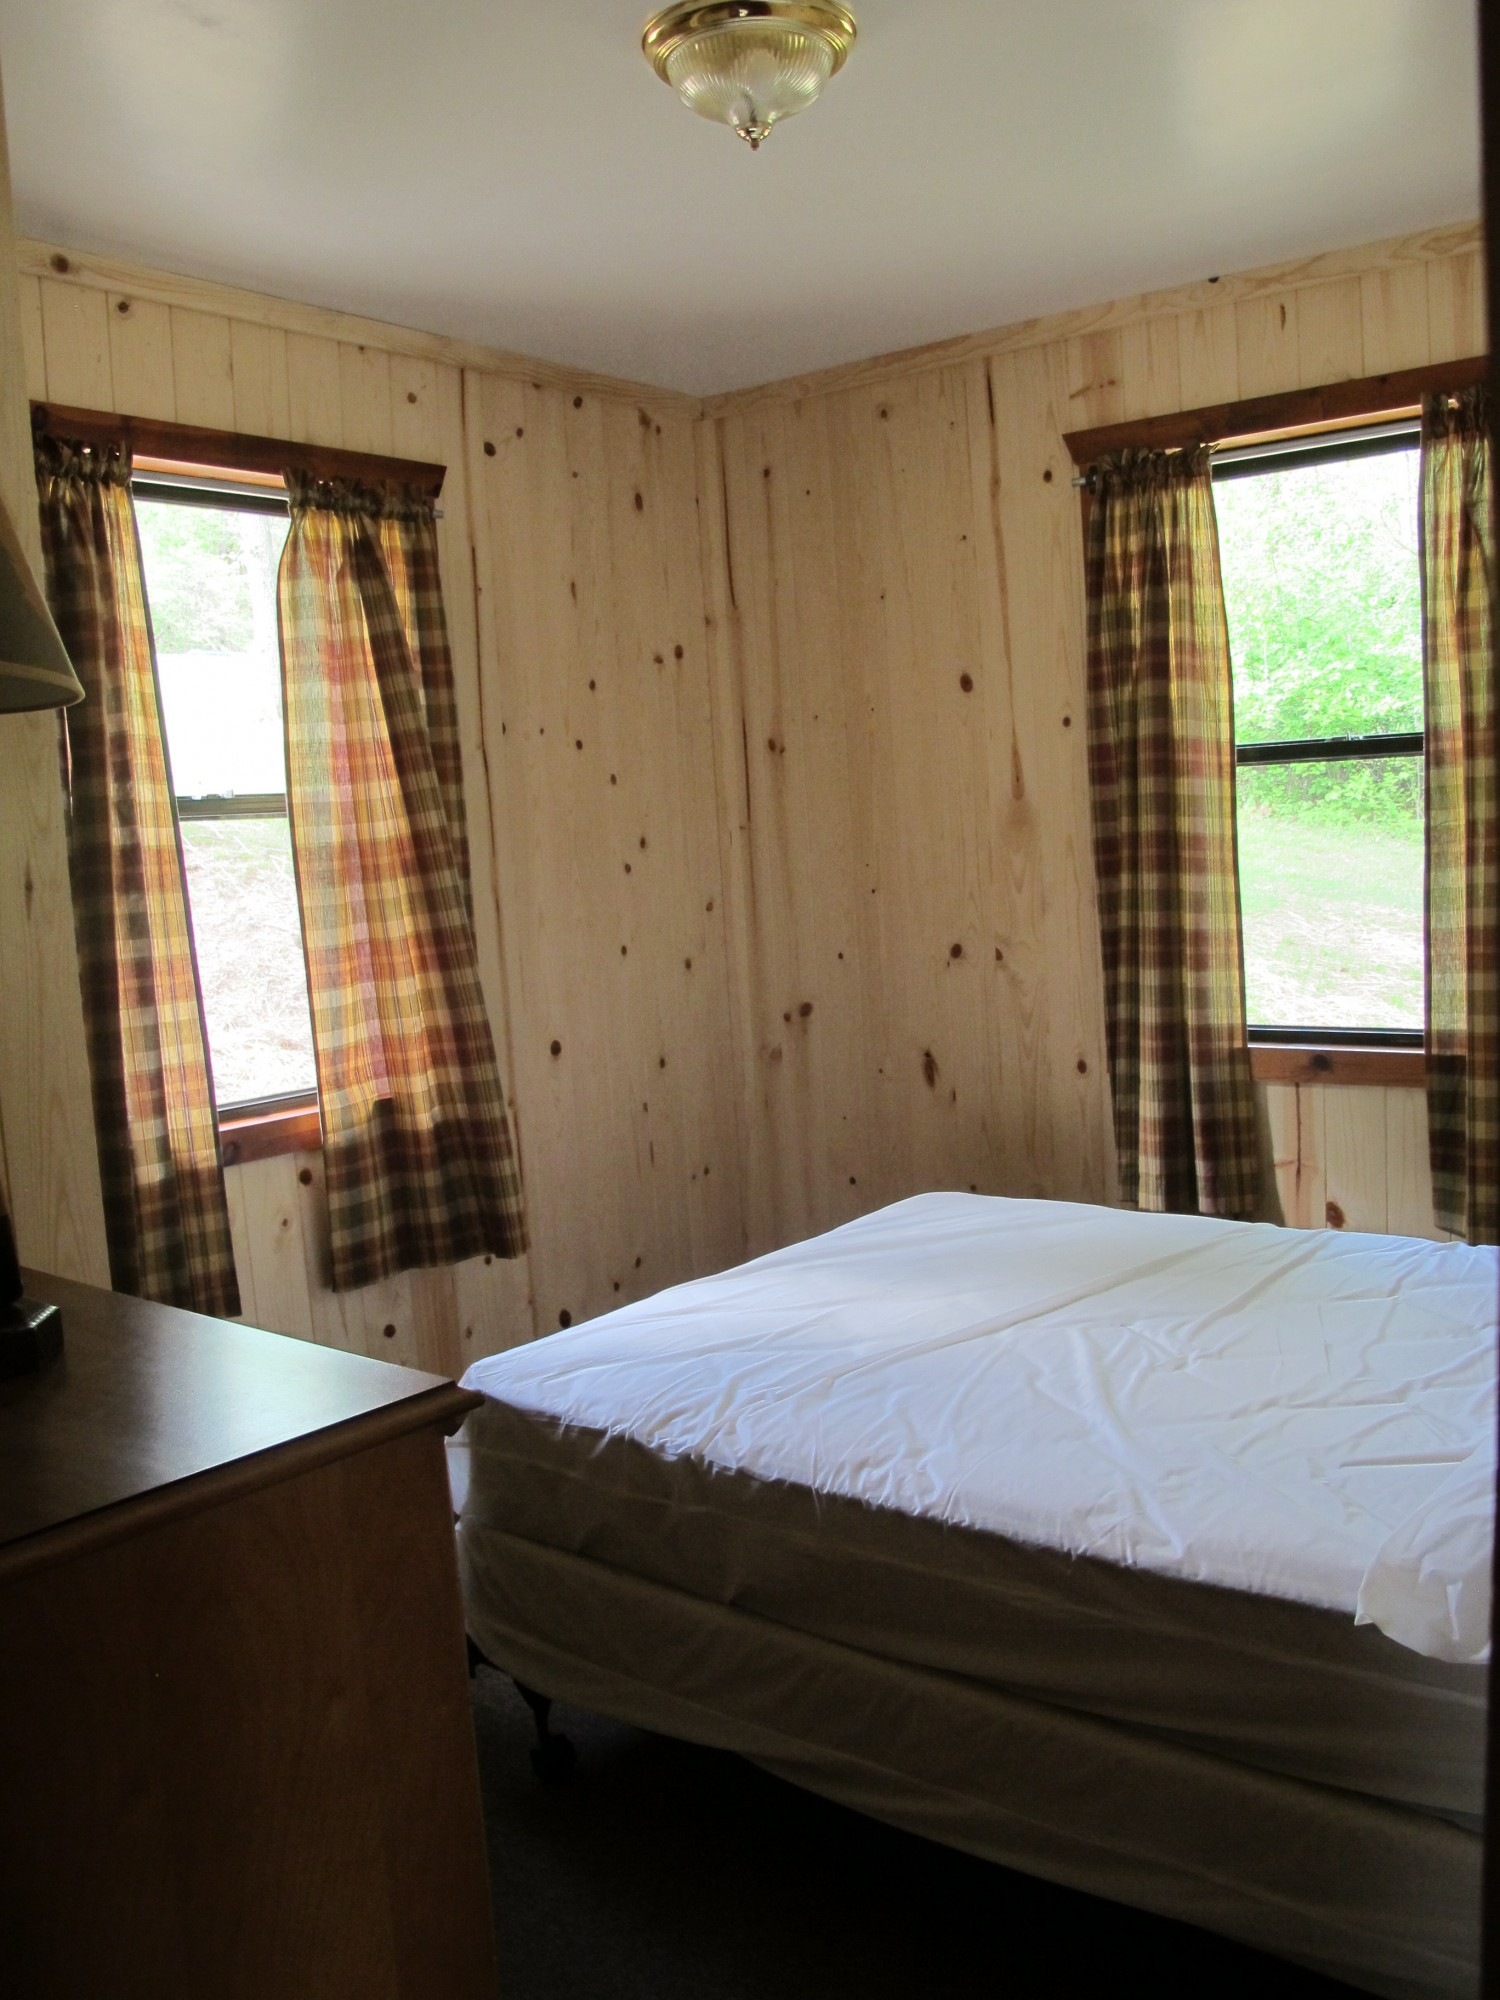 fishing screened cabin park which and fridge green stove trail lake seneca lakes cabins rooms to faces includes porch toilet forest state ohio pin fireplace